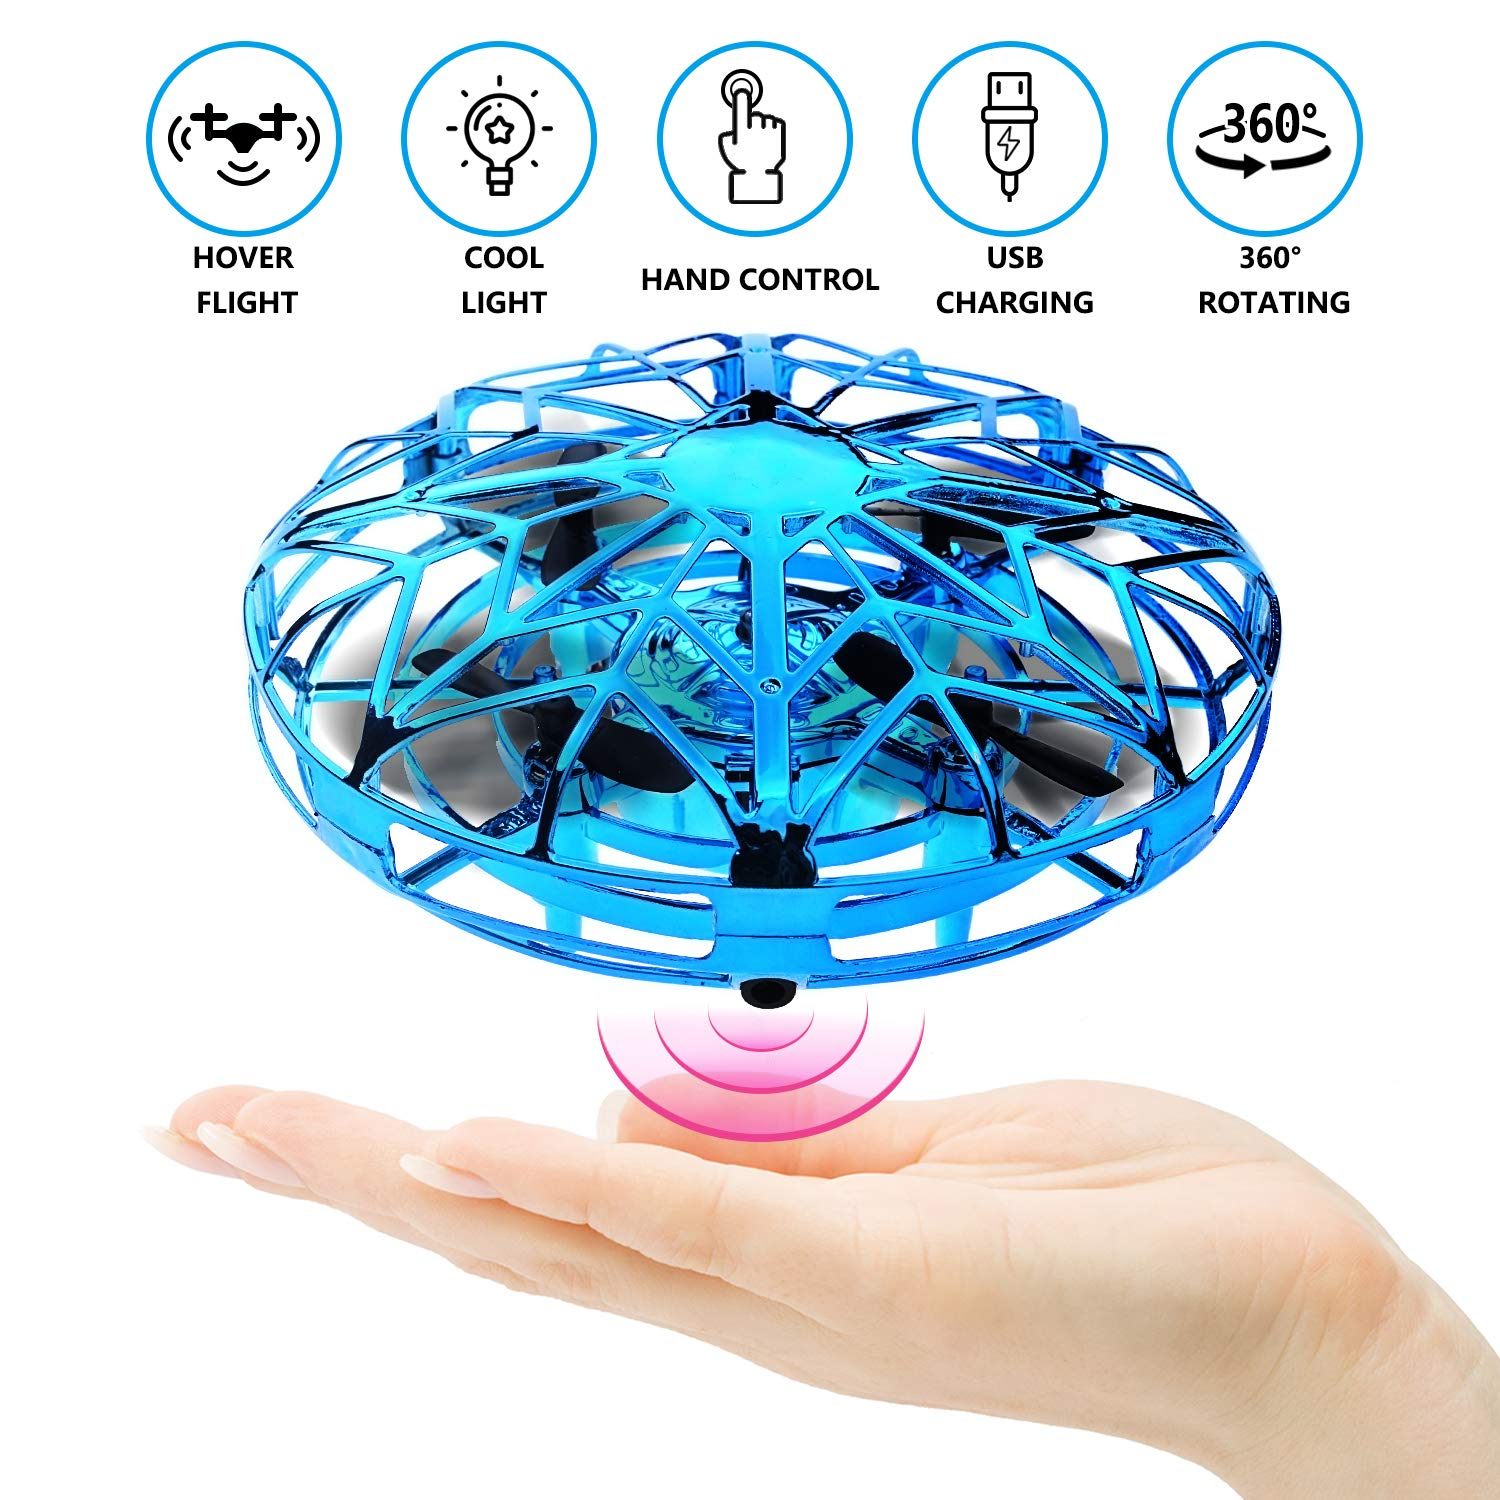 RACPNEL Hand Operated Drones for Kids or Adults, Hand-Controlled Flying Ball, Infrared Induction Interactive Mini Drone Helicopter with LED Lights and, Flying Toys for Boys or Girls (Blue) by RACPNEL